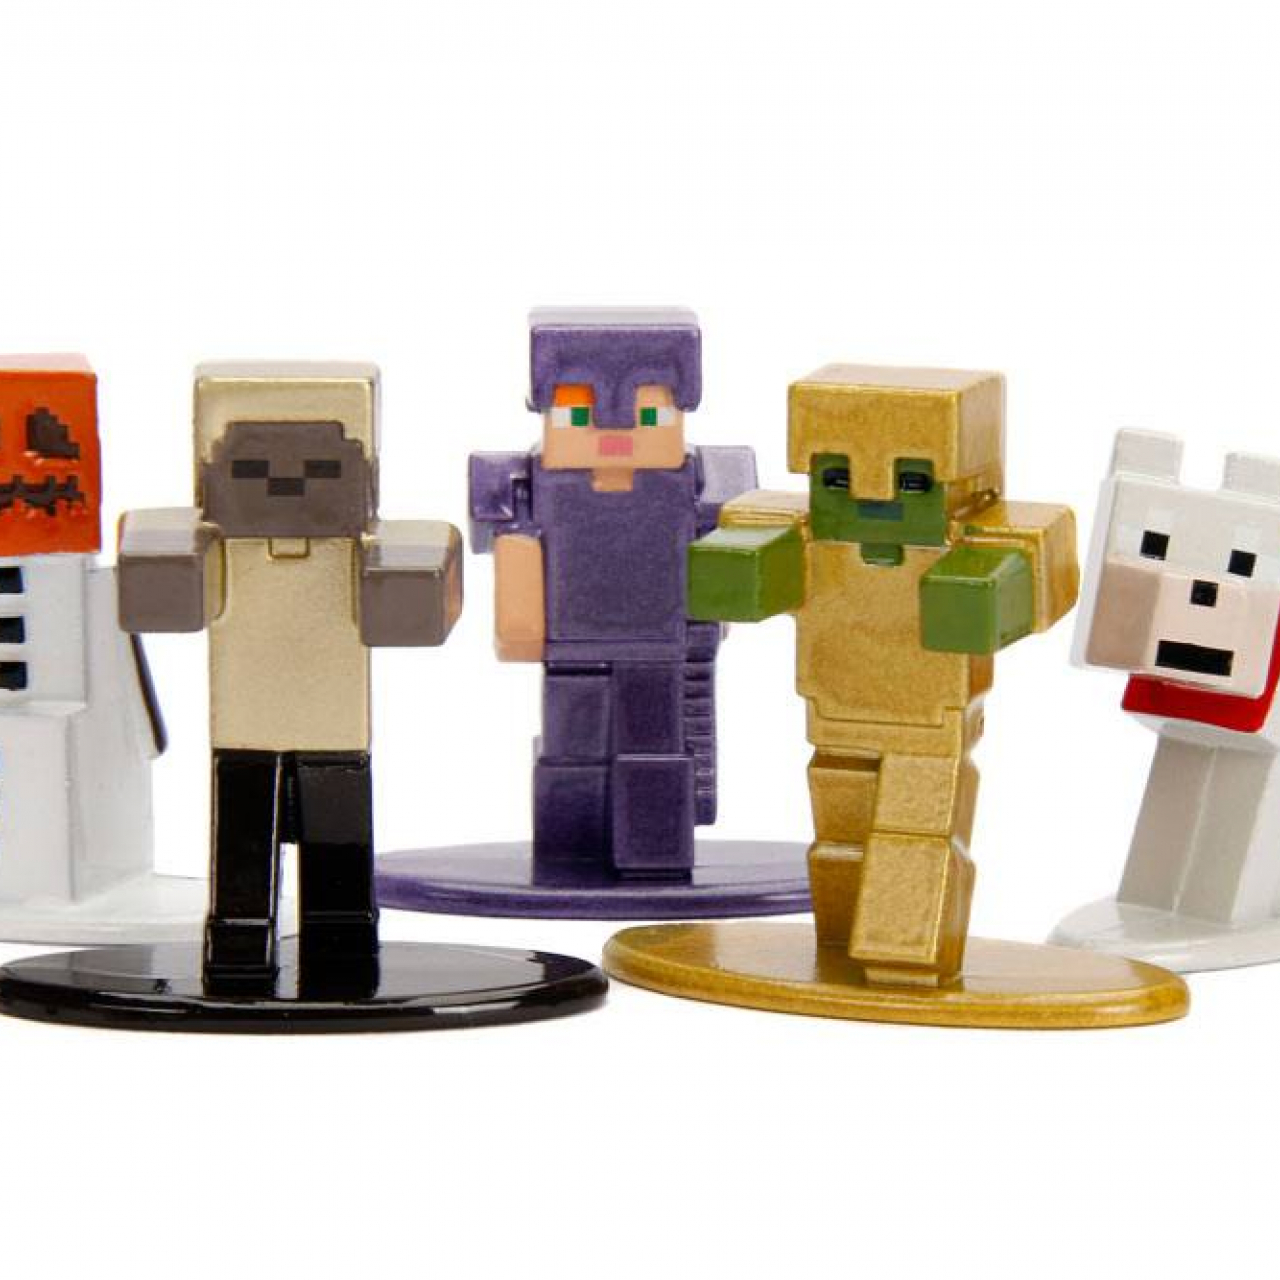 Minecraft Nano Metalfigs Diecast Mini Figures 5-Pack Wave 1 4 cm